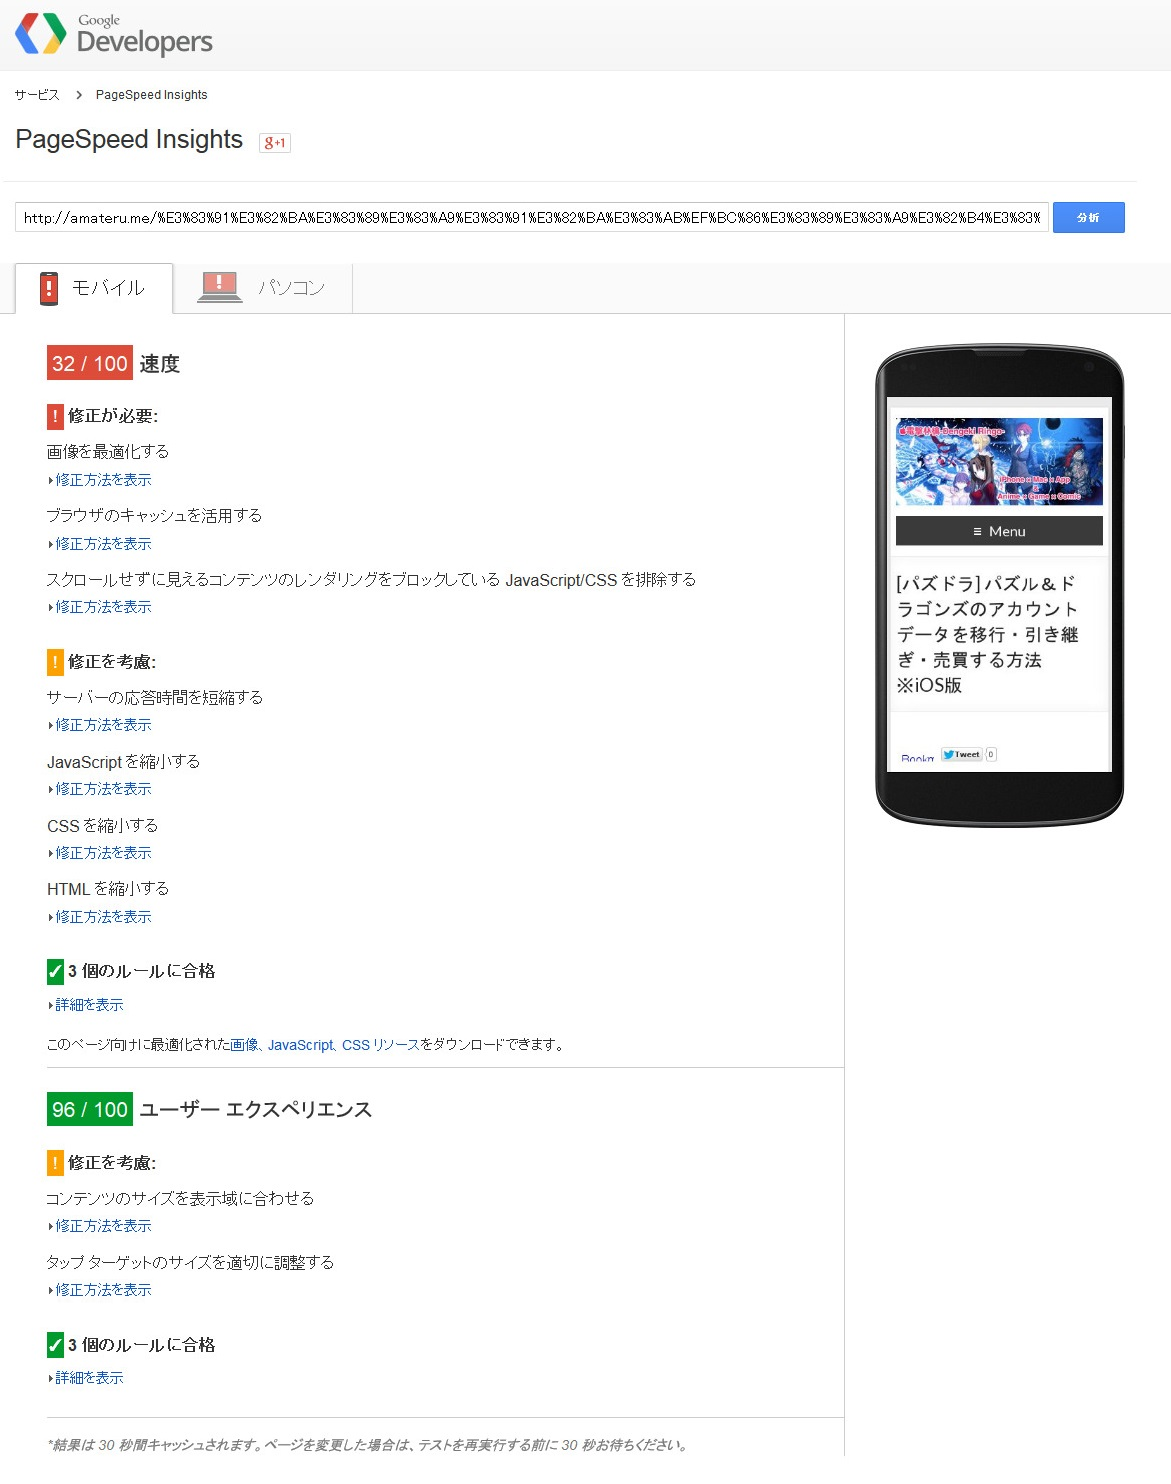 PageSpeed Insights 分析